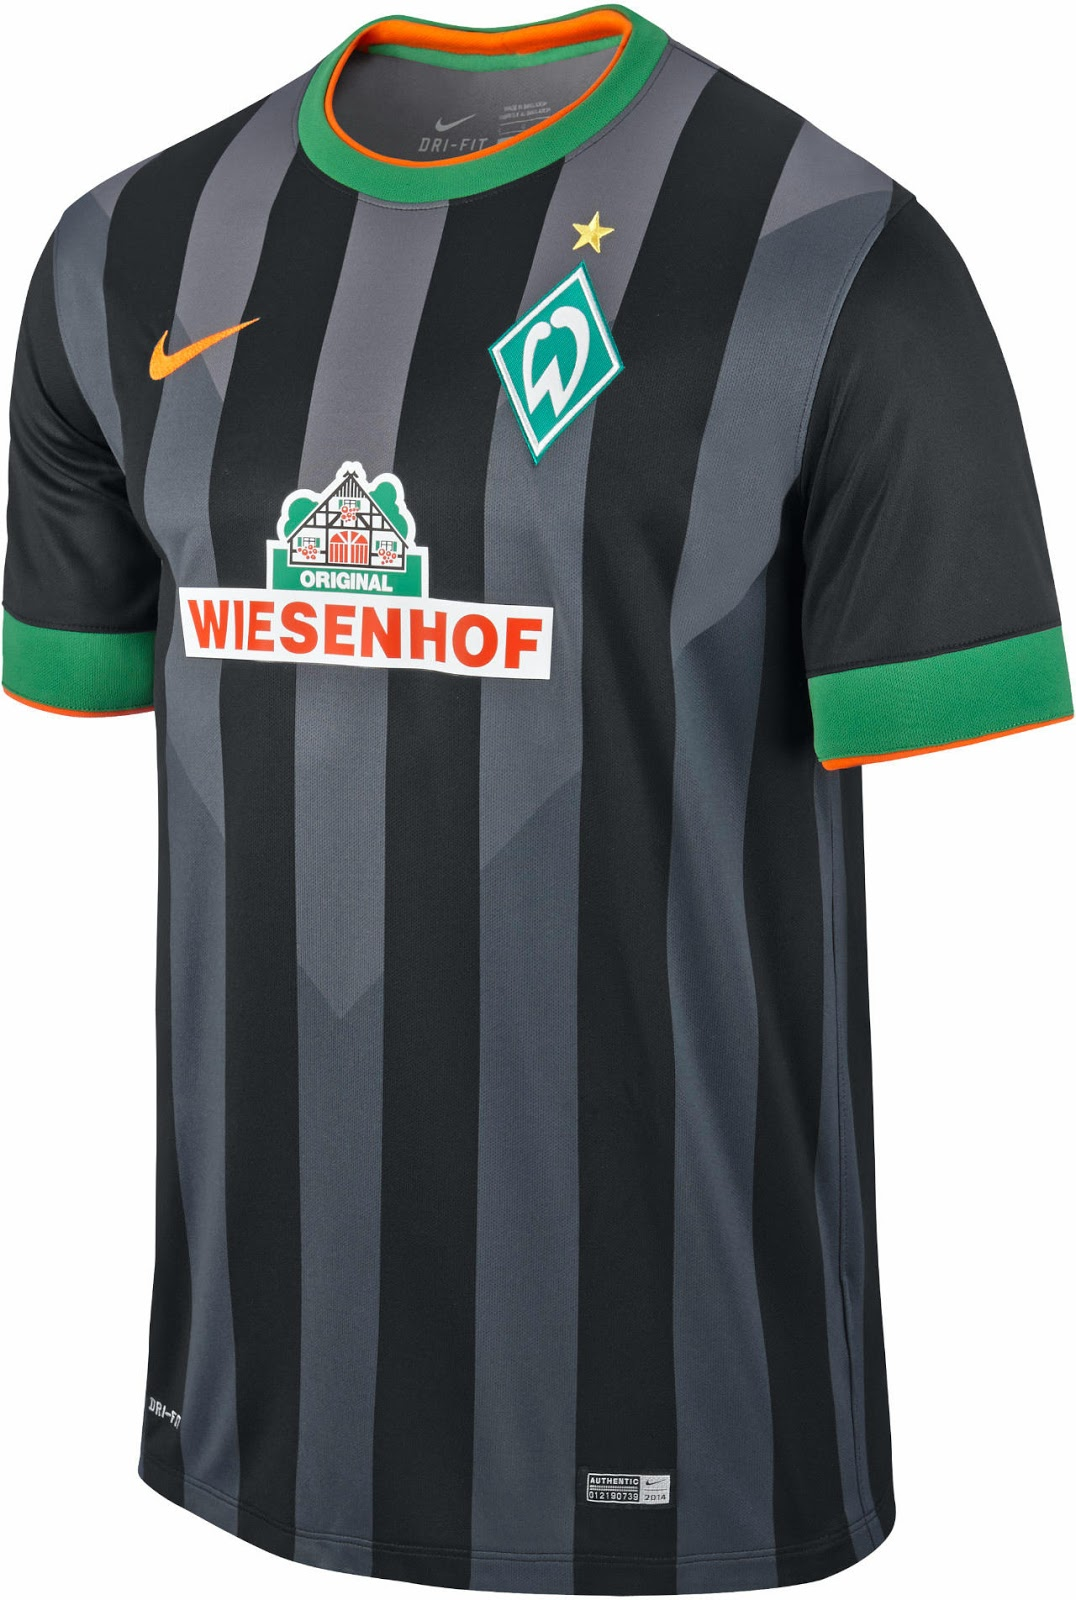 New Werder Bremen 14-15 Home And Away Kits Released